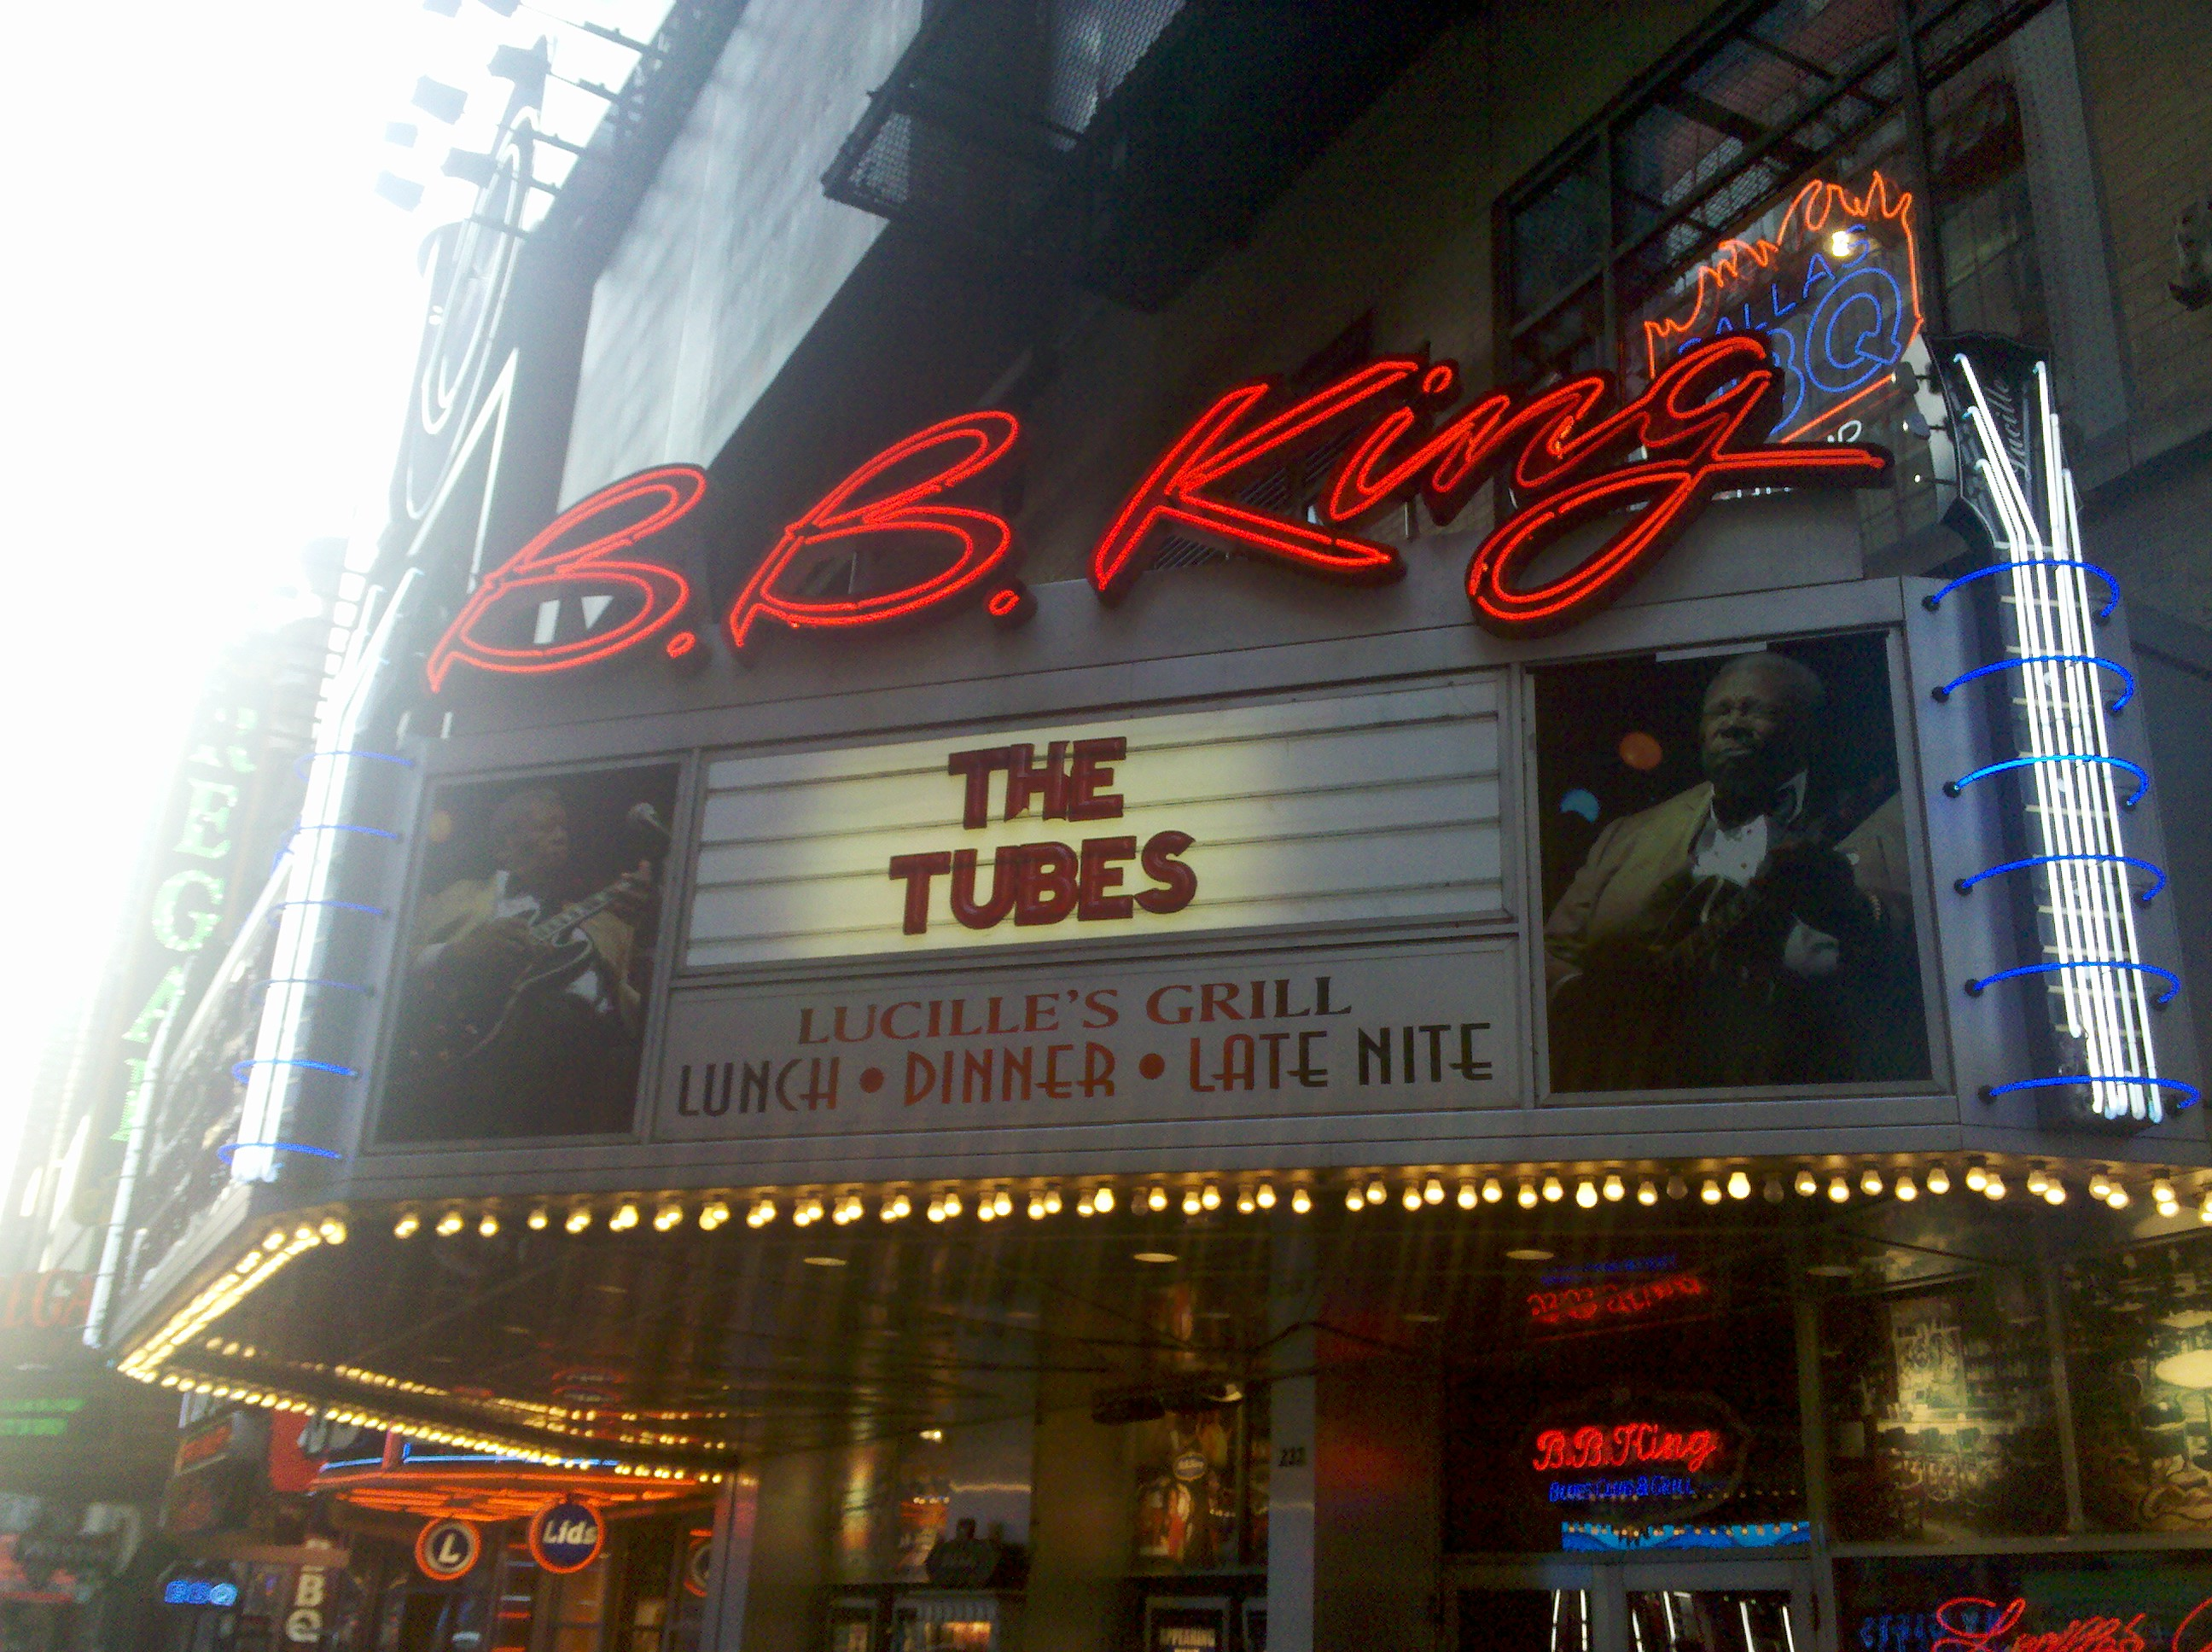 Andrew Colyer with The Tubes in New York City at B.B.King's